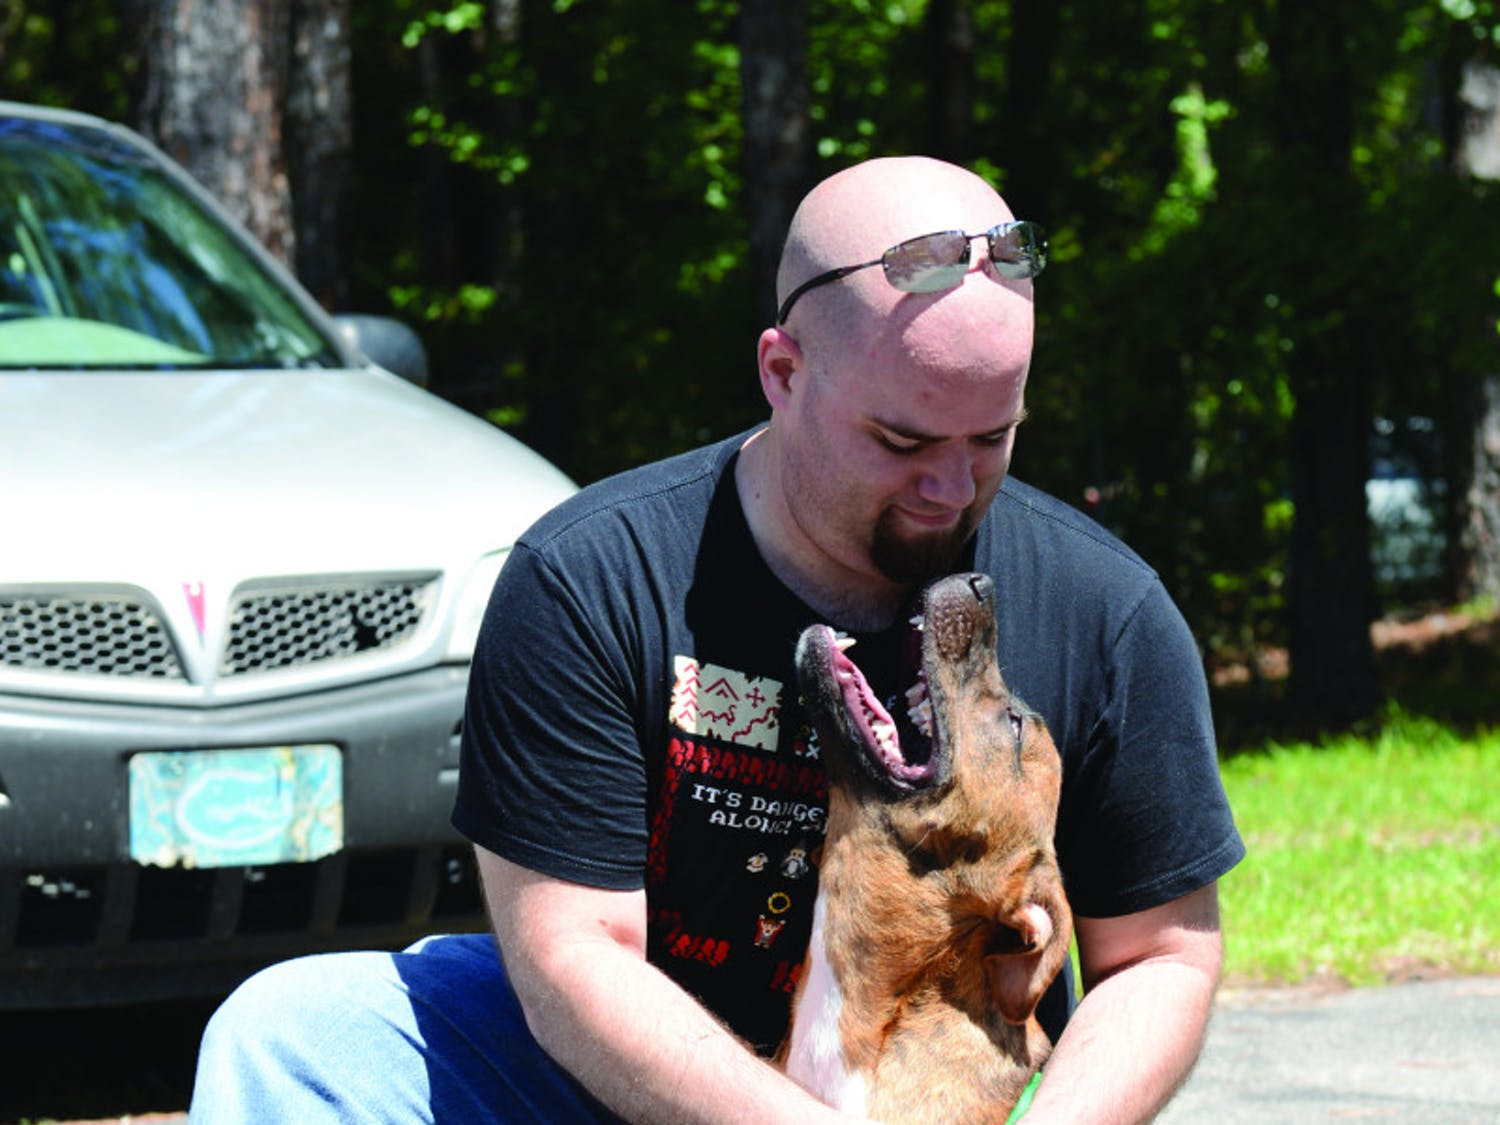 Tim Forbes, 29, puts a leash on his new dog, Graham, at the Summer Lovin' Adoptathon on Saturday. The event found a new home for more than 180 cats and dogs.